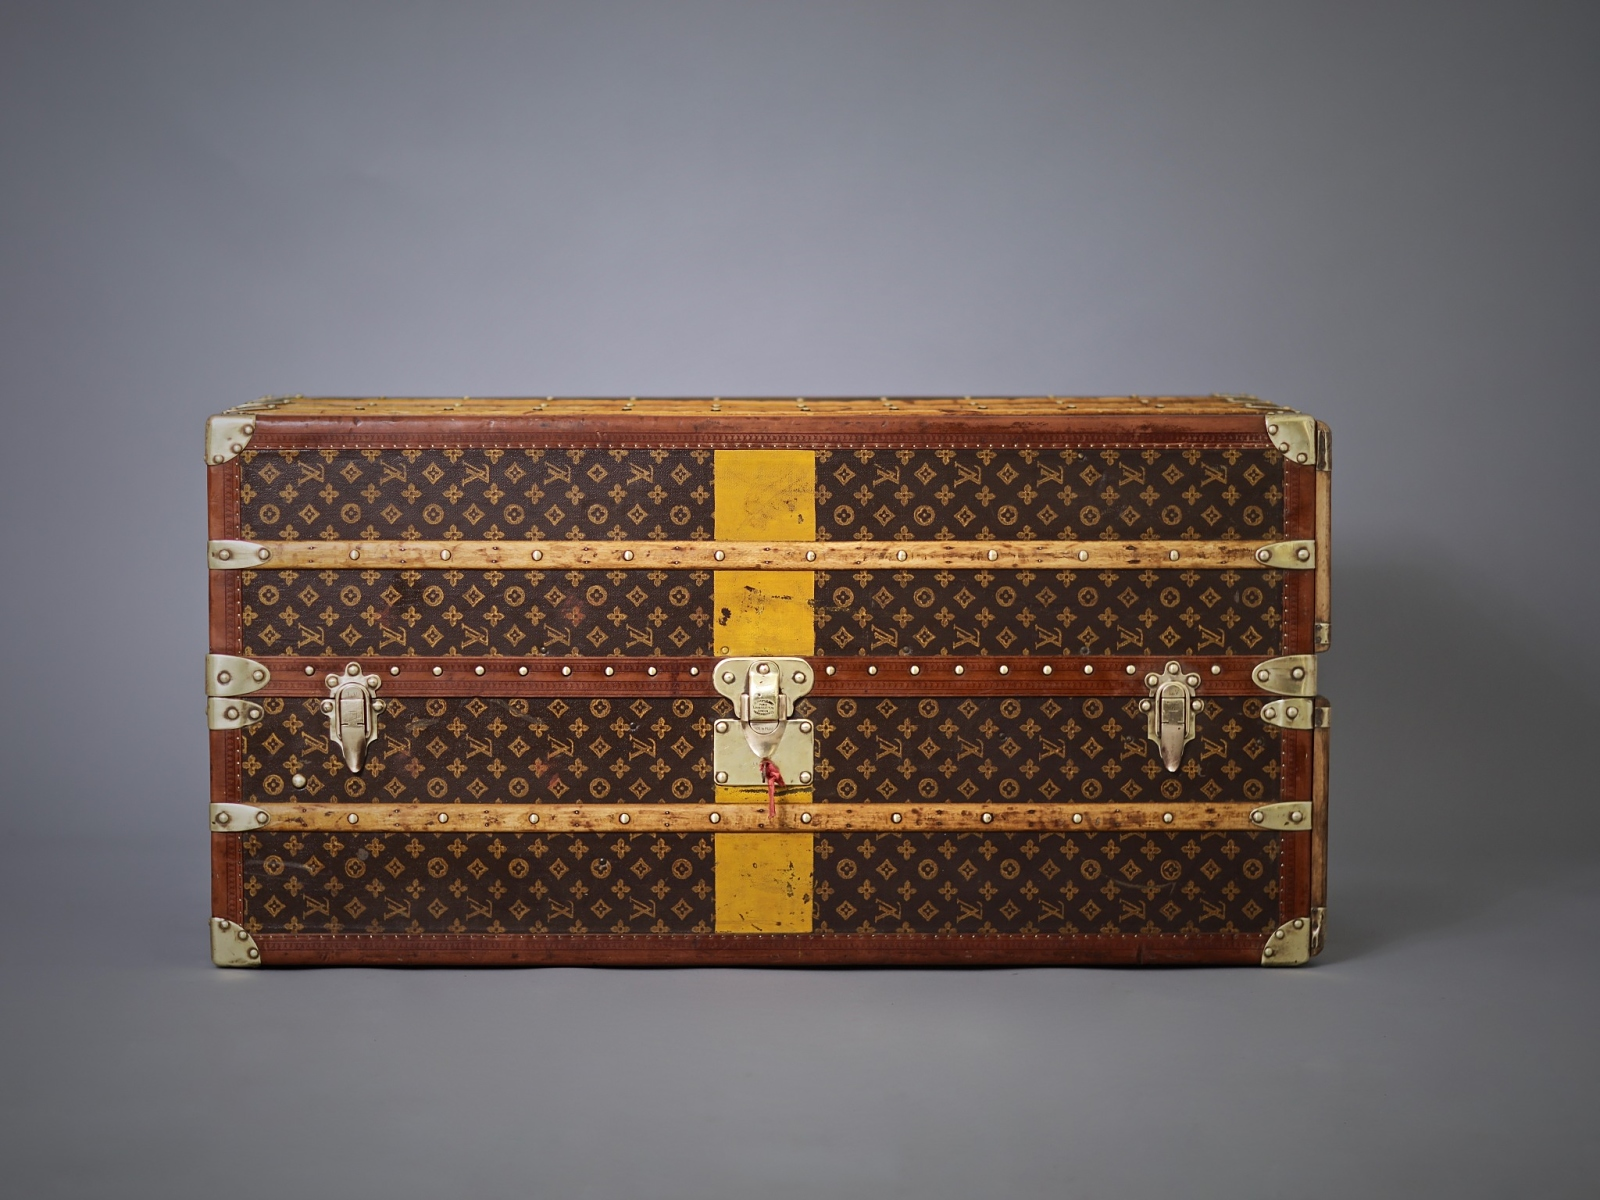 the-well-traveled-trunk-louis-vuitton-thumbnail-product-5686-1